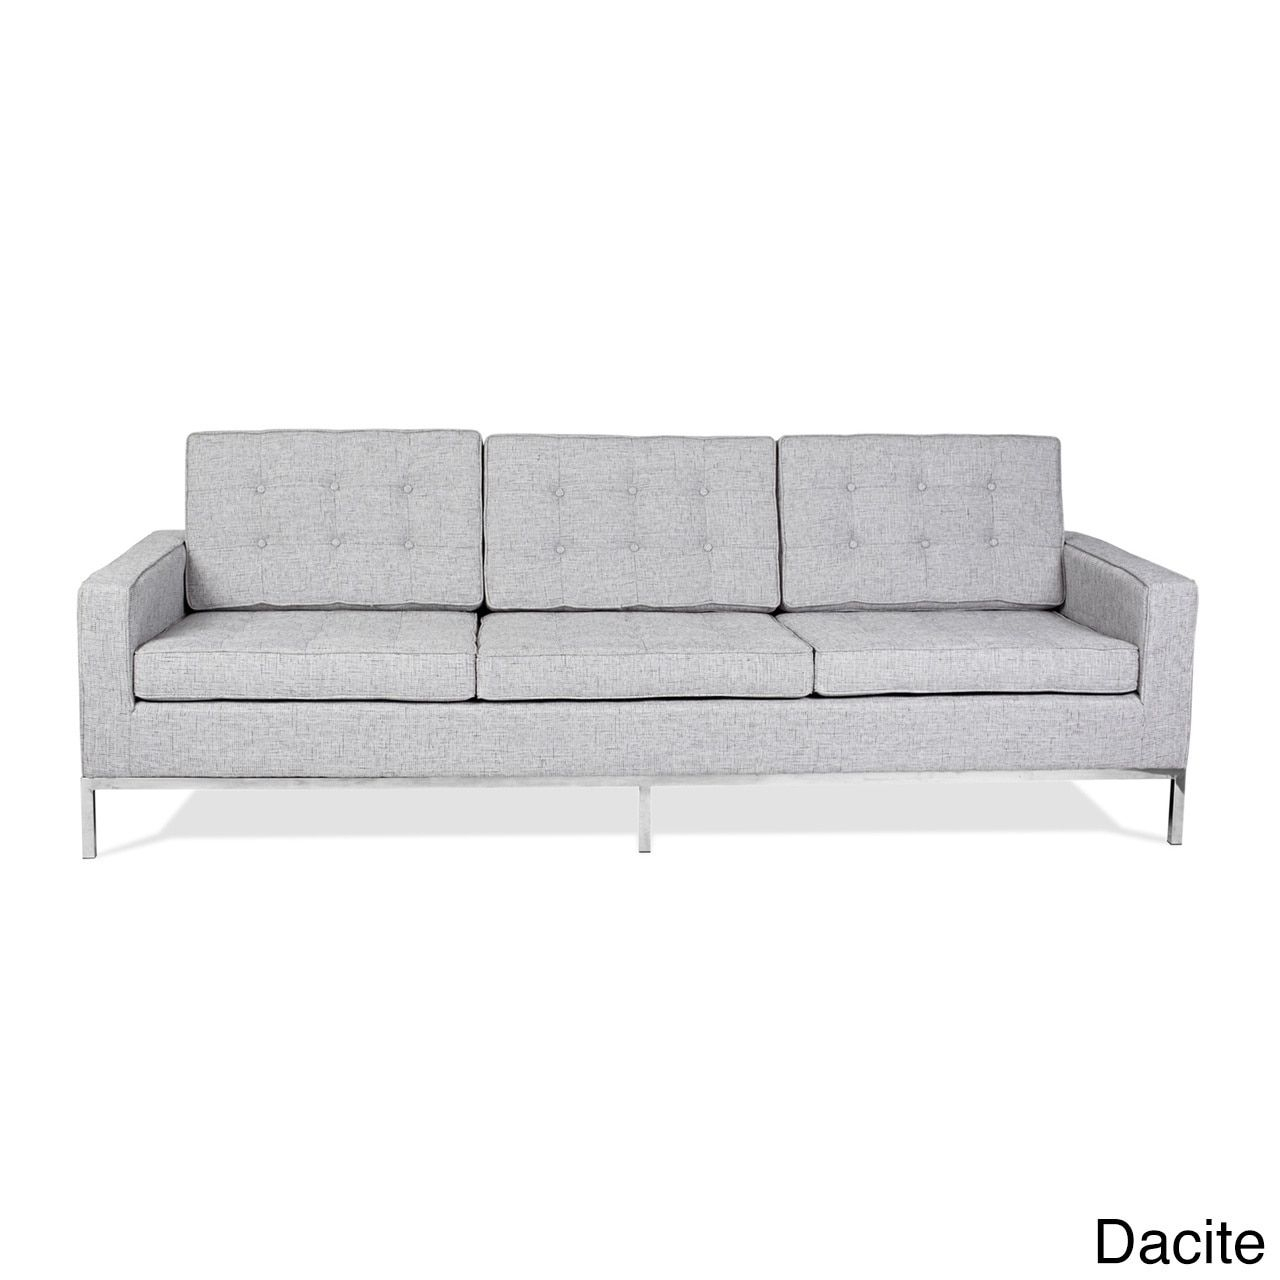 Kardiel Florence Knoll Style Sofa 3 Seat, Premium Fabric Pertaining To Florence Large Sofas (View 8 of 15)